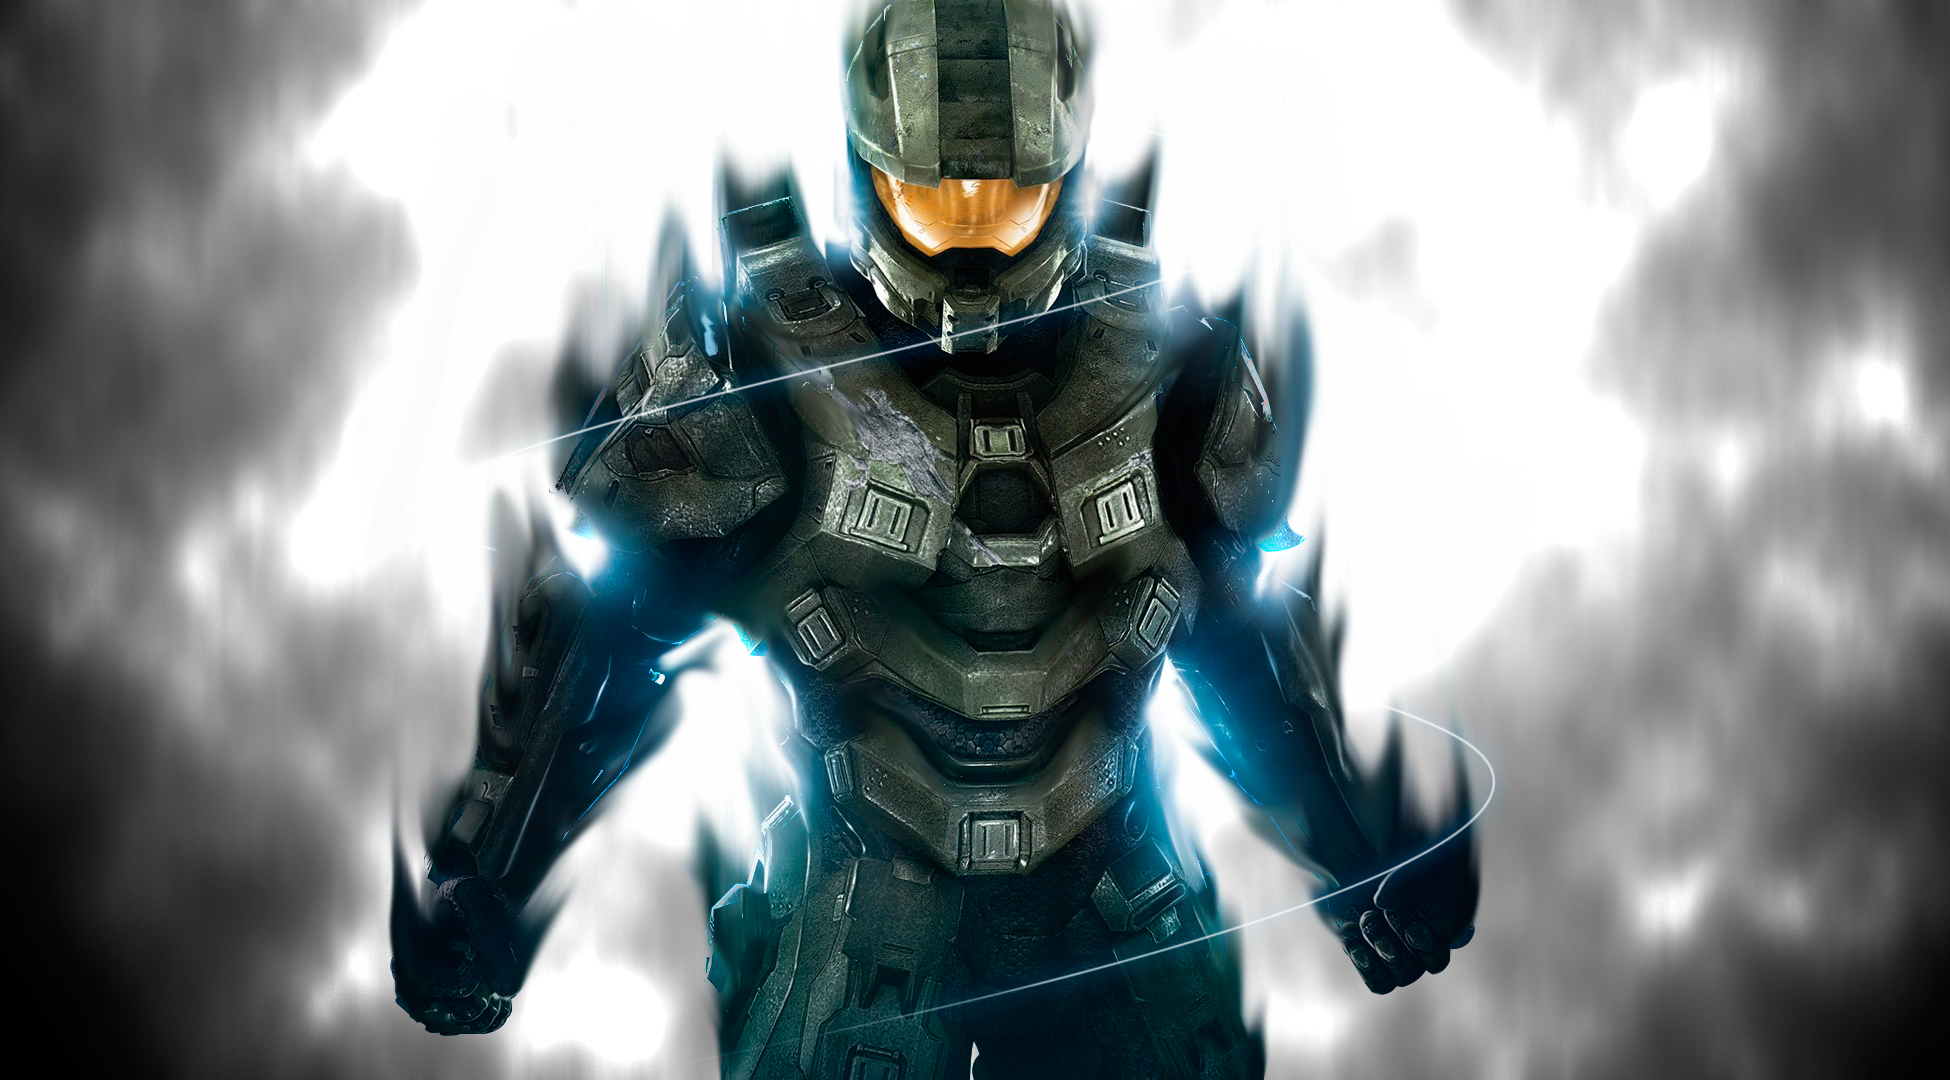 Halo full hd wallpaper and background image 1950x1080 - Halo 4 pictures ...